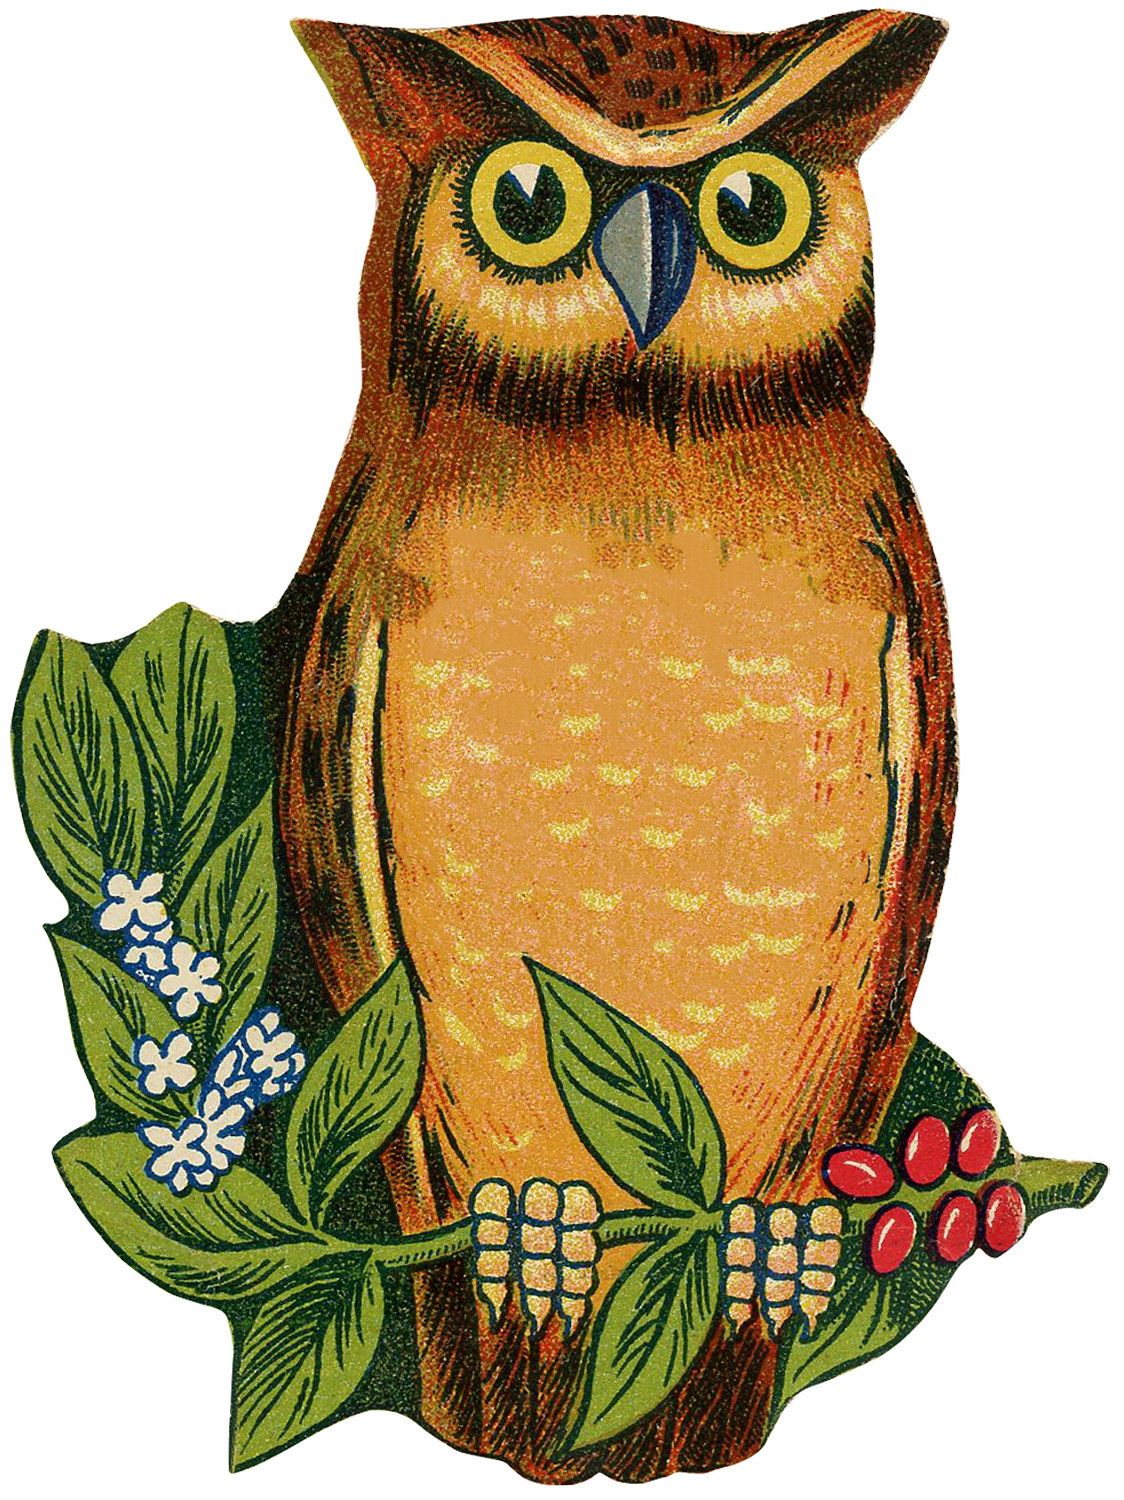 3 Cutest Vintage Owl Images! - The Graphics Fairy